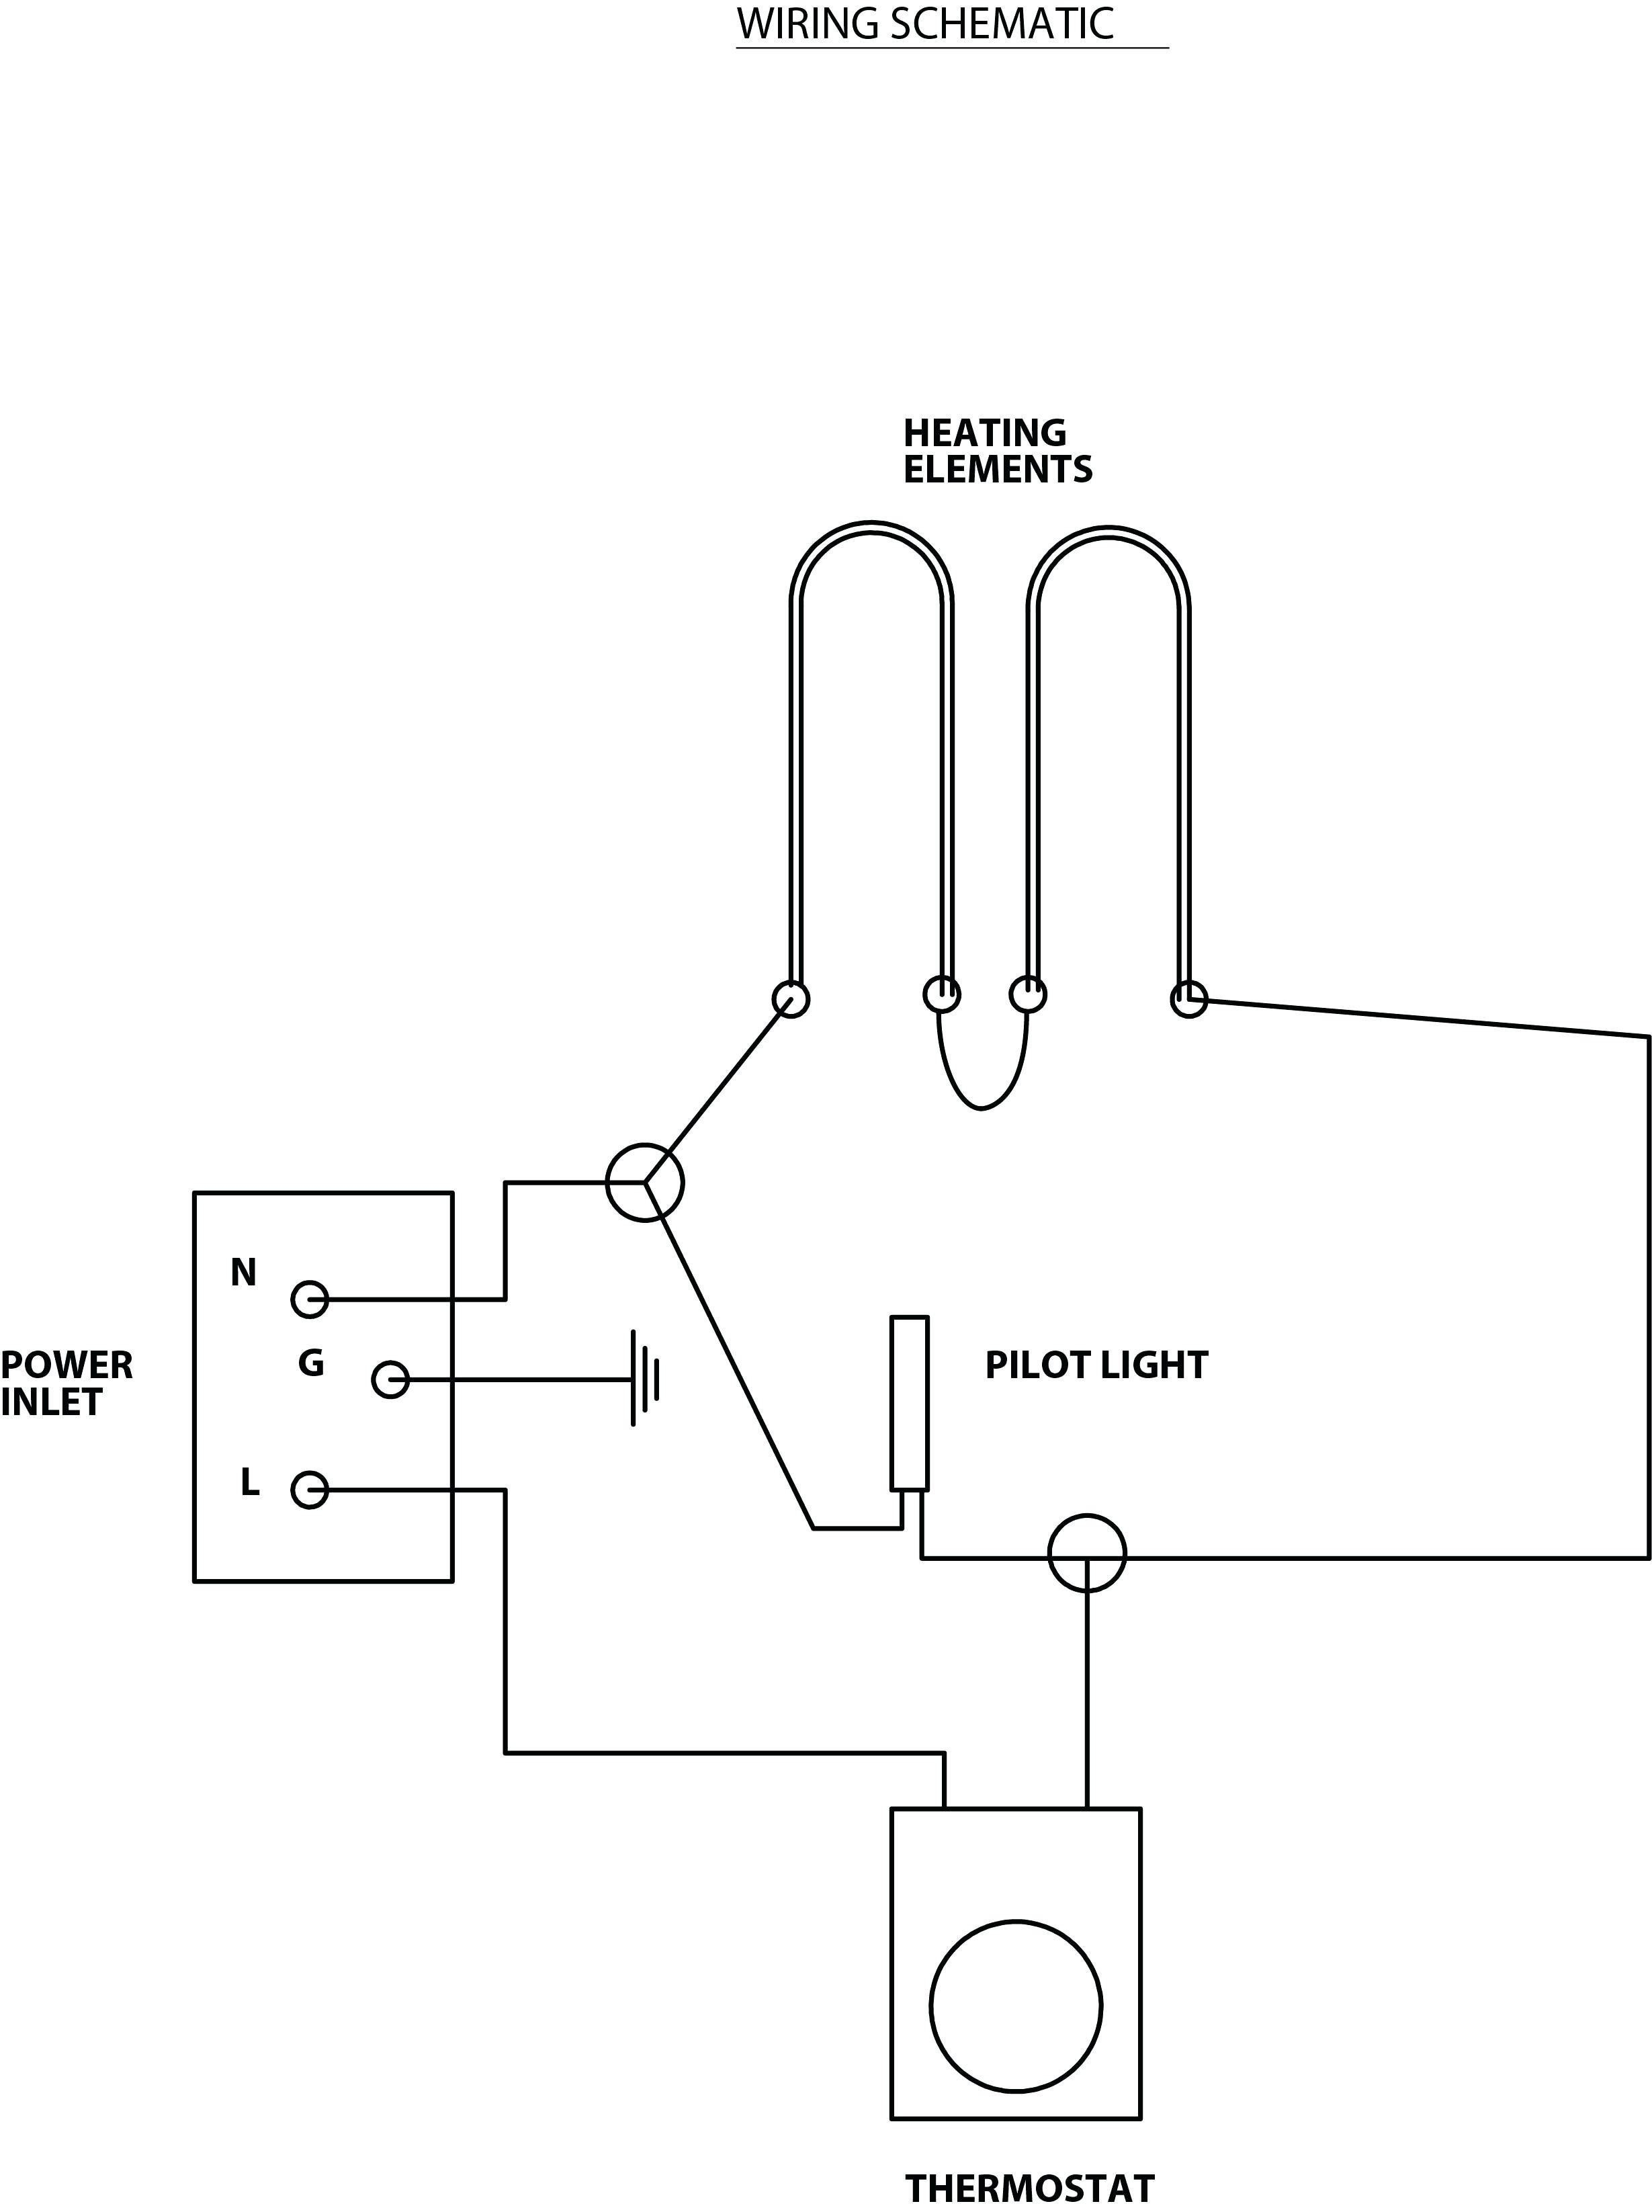 Heat Trace Wiring Diagram Wiring Schematic Diagram